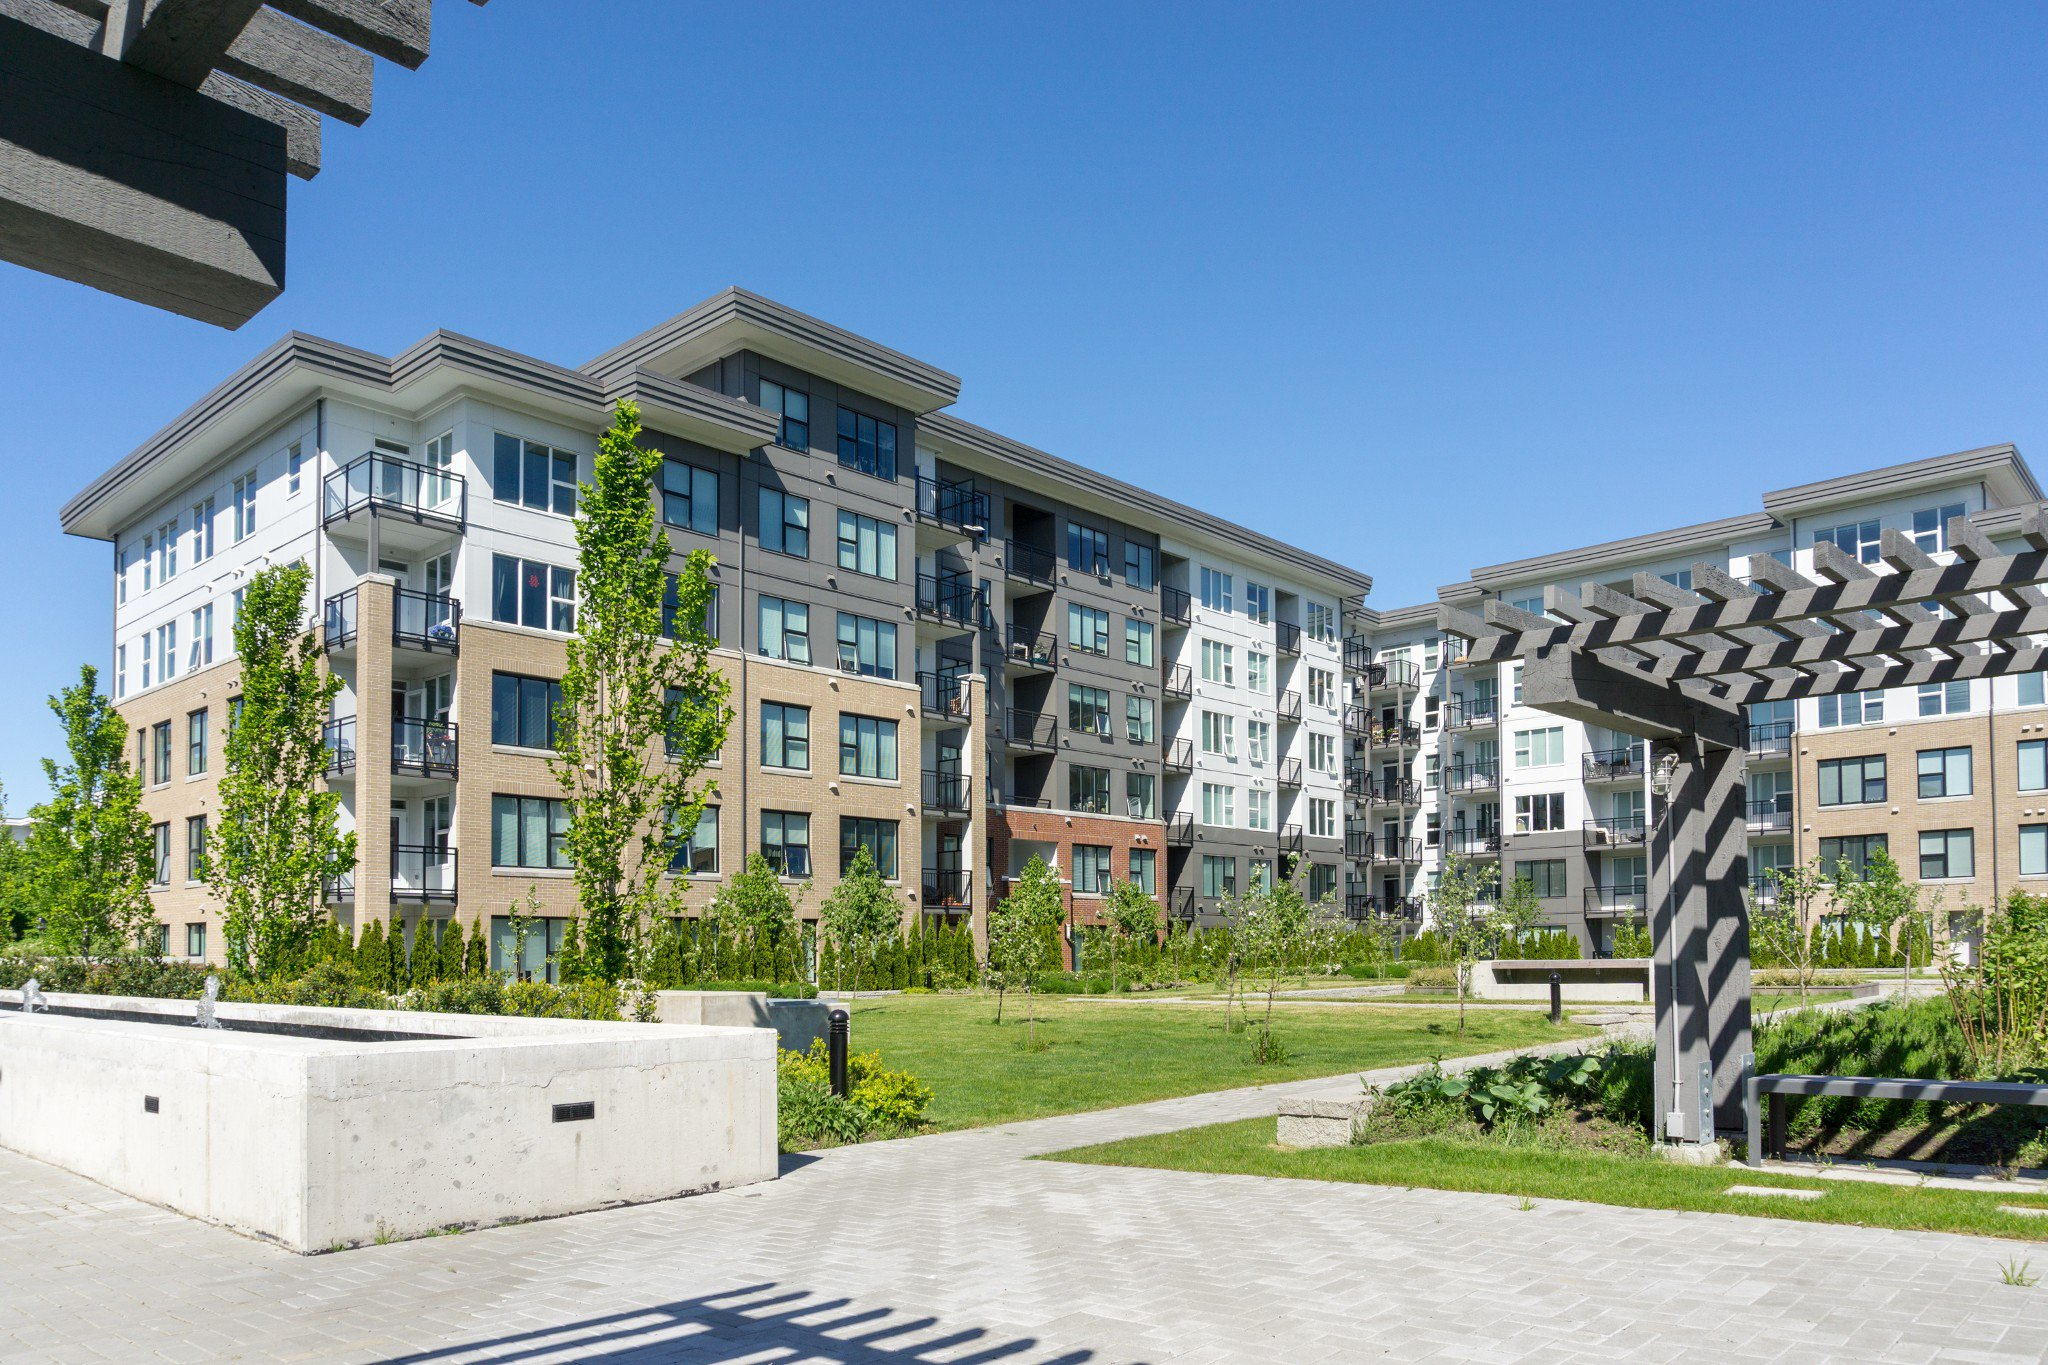 """Photo 41: Photos: 303 9311 ALEXANDRA Road in Richmond: West Cambie Condo for sale in """"ALEXANDRA COURT"""" : MLS®# R2347629"""